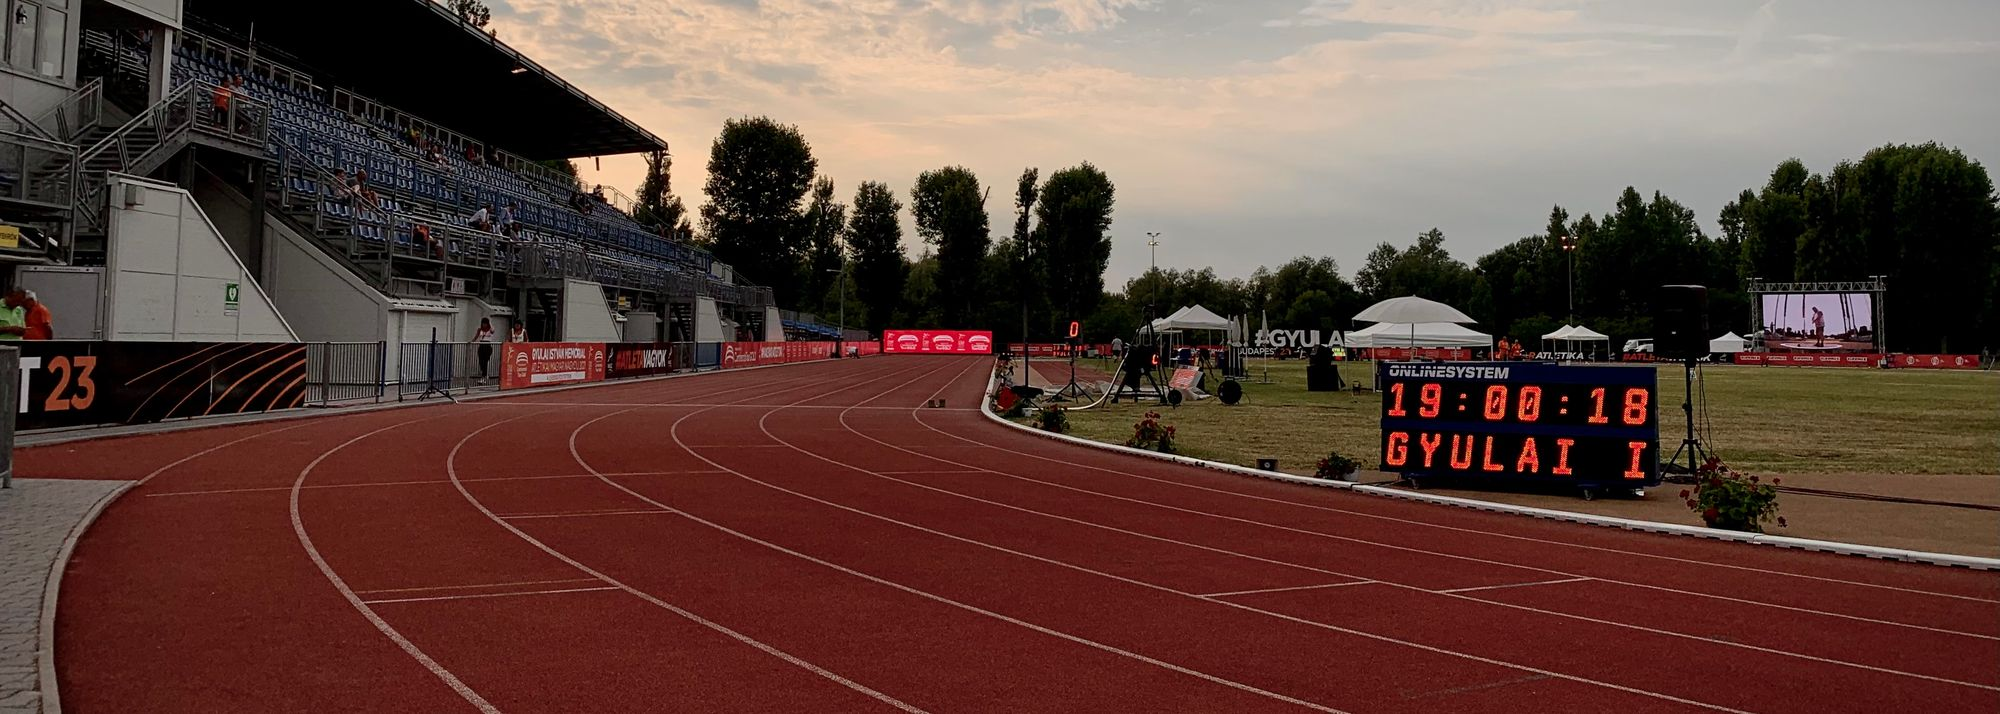 The 2021 World Athletics Continental Tour Gold series continues on Monday and Tuesday (5-6) with the Istvan Gyulai Memorial in Szekesfehervar, Hungary.